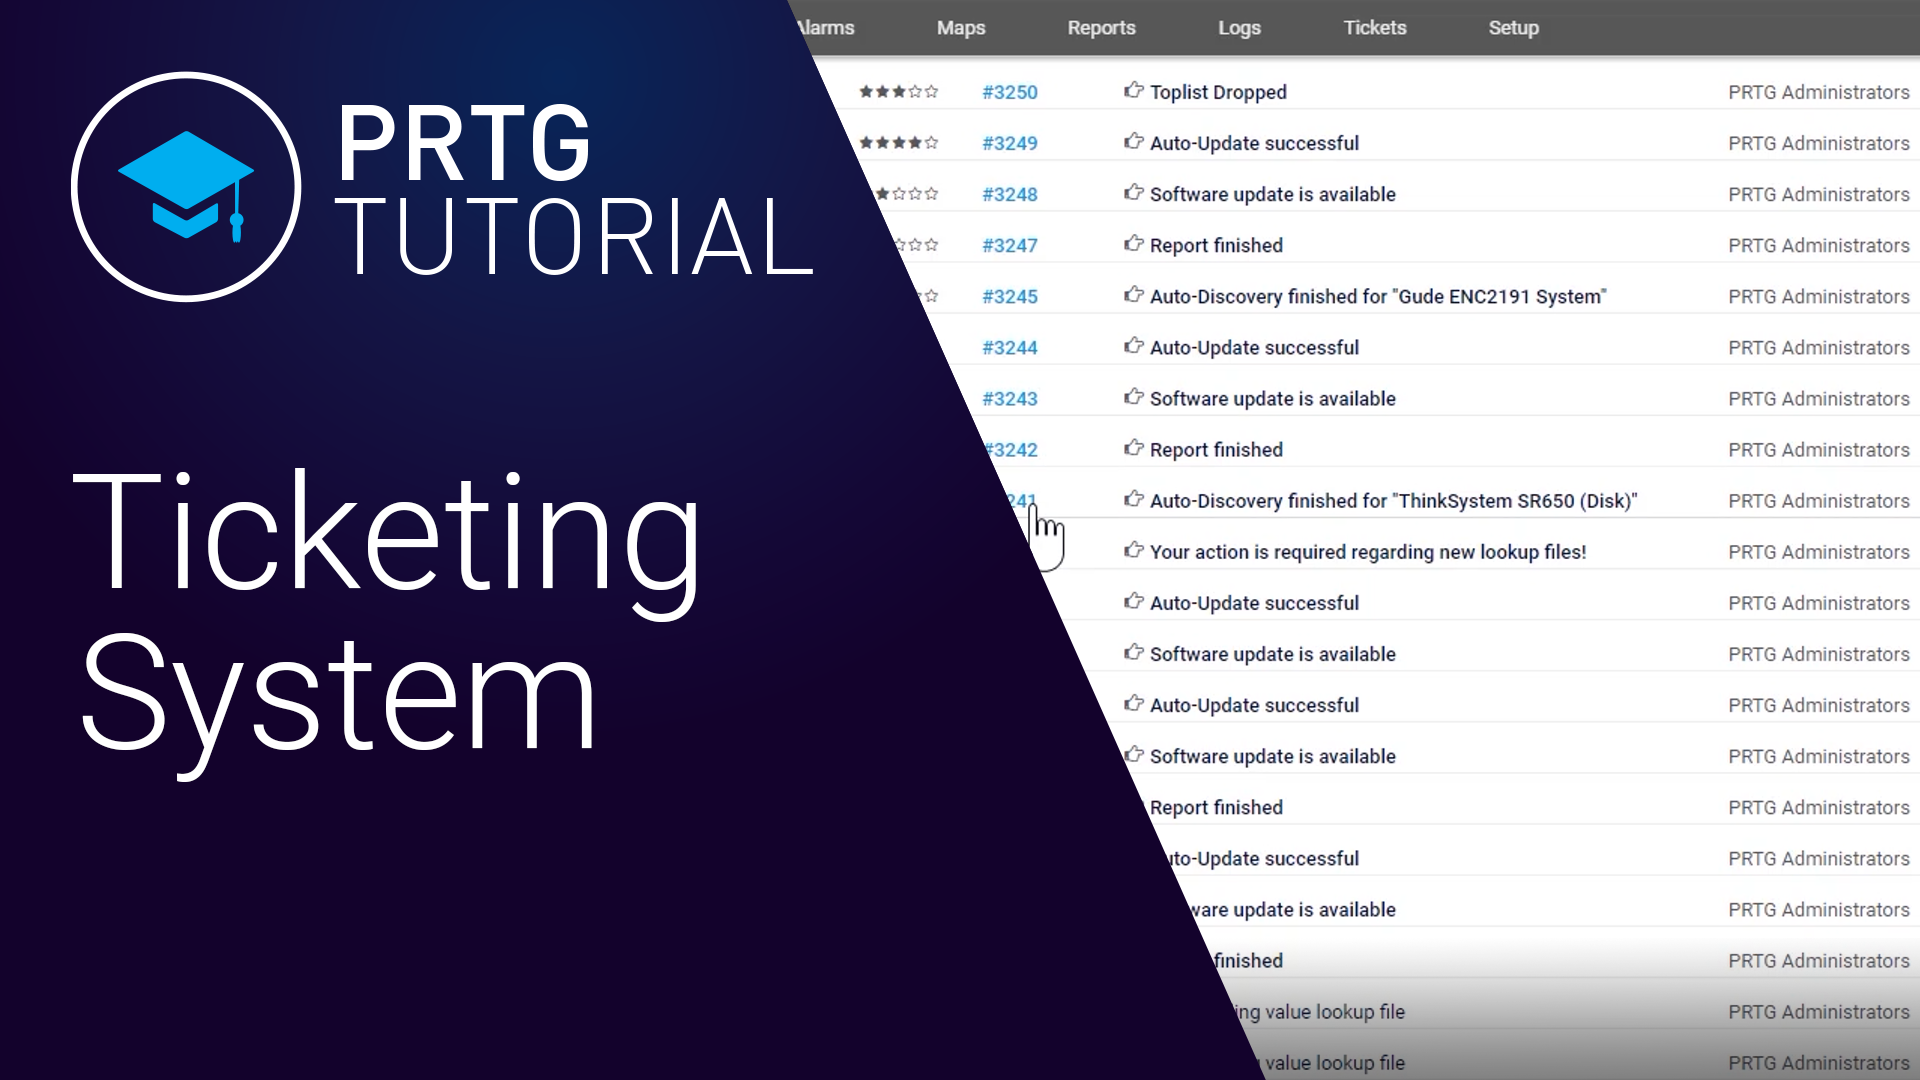 Video: PRTG - Ticketing System (Videos, Tickets)